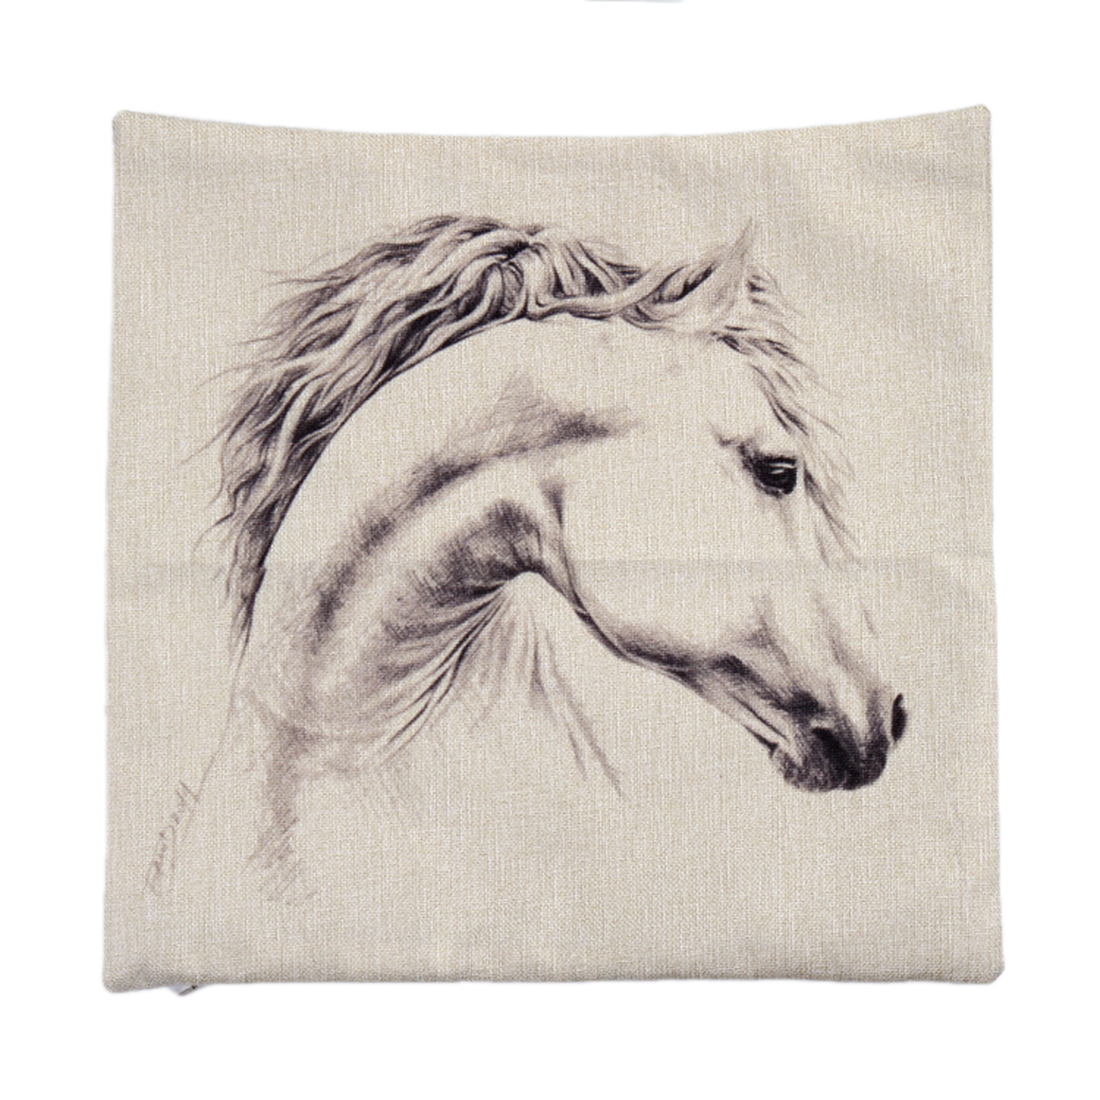 Piccocasa Sofa Bed Horse Pattern Throw Cushion Pillow Cover Case 45 x 45cm